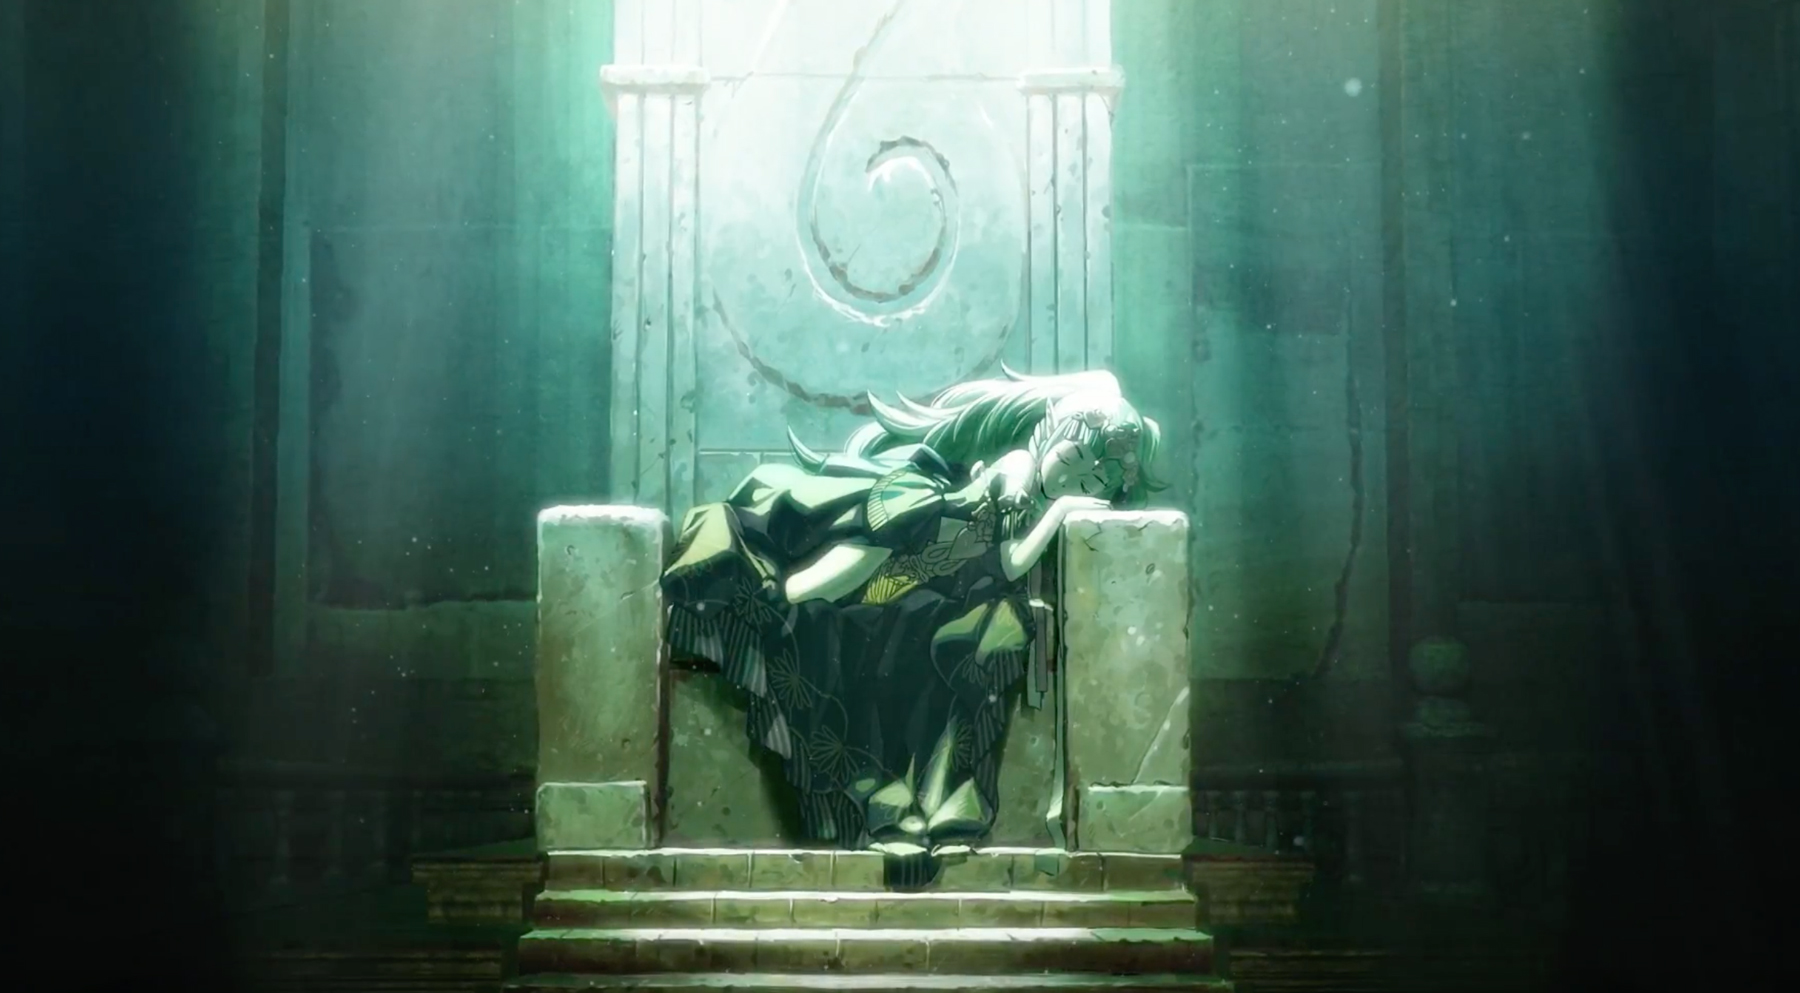 Nintendo reveals Fire Emblem: Three Houses